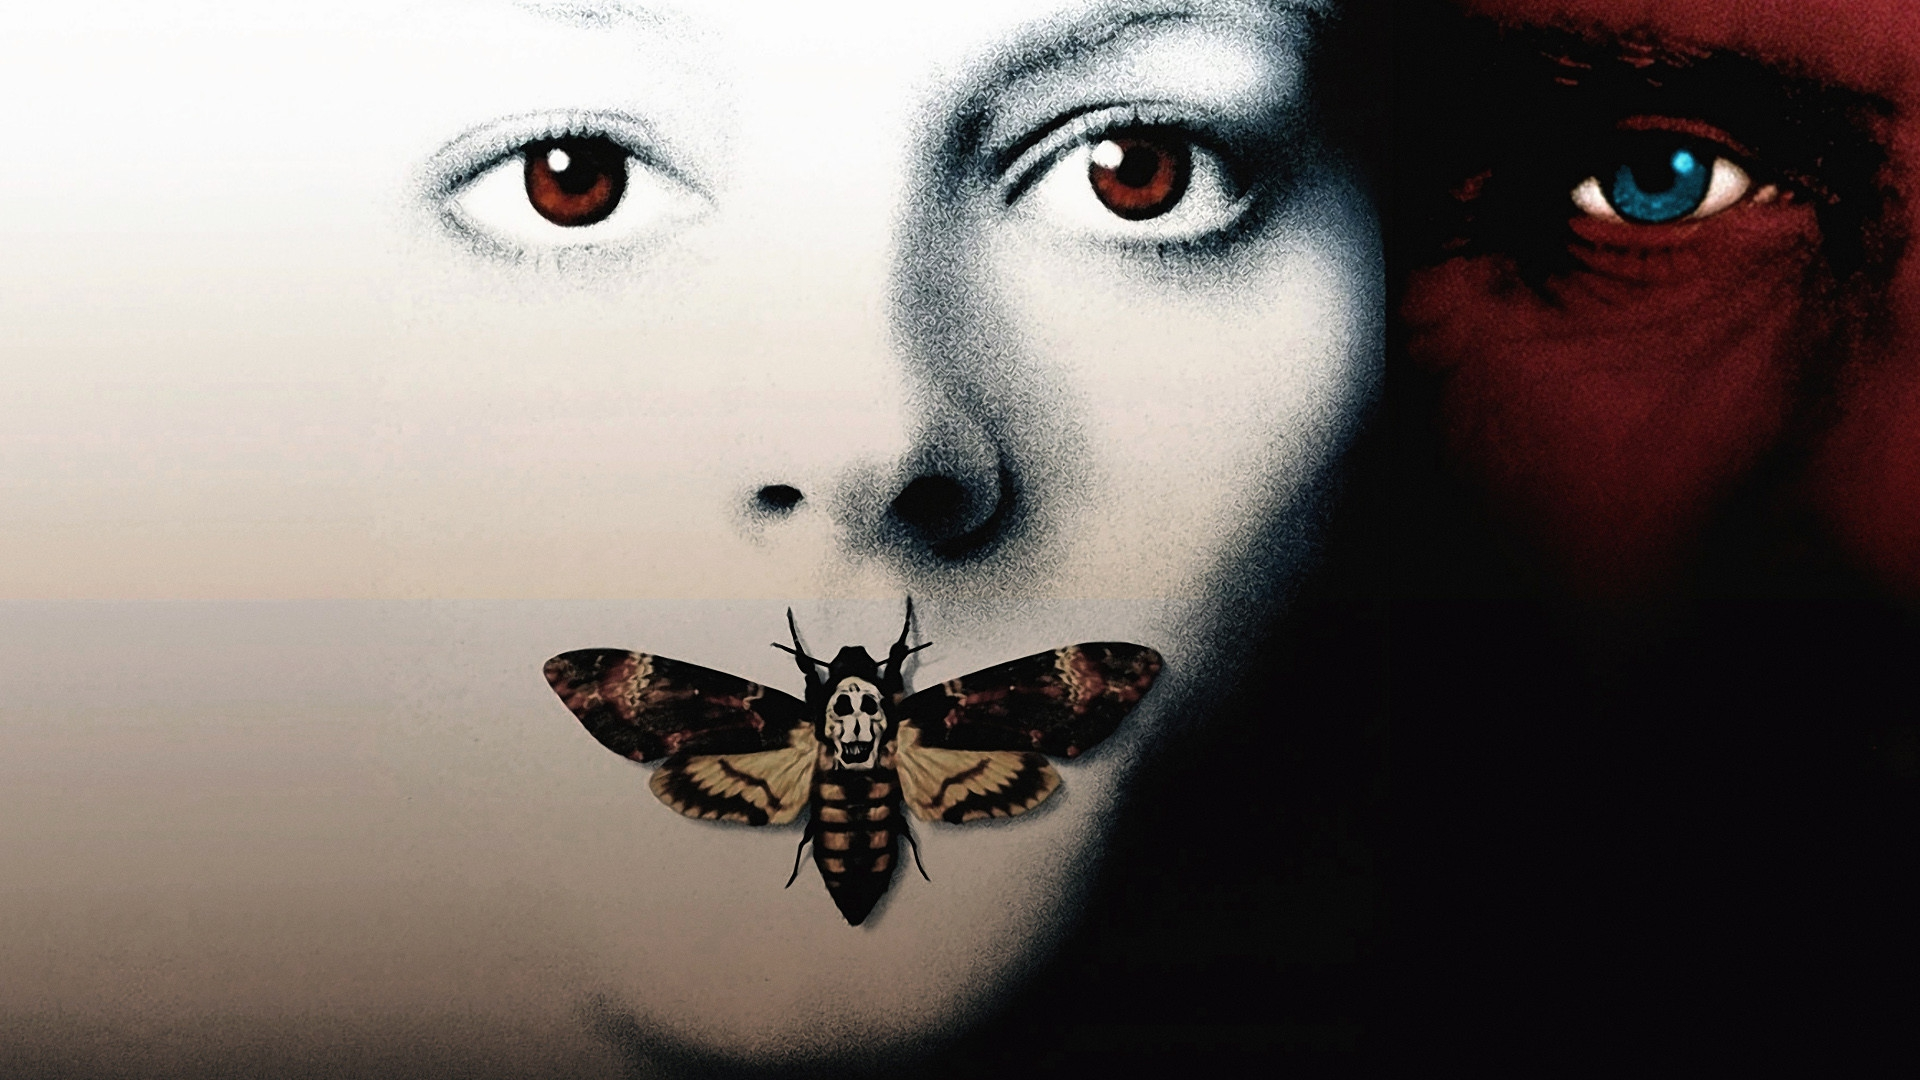 The Silence Of The Lambs Wallpaper 5   1920 X 1080 stmednet 1920x1080